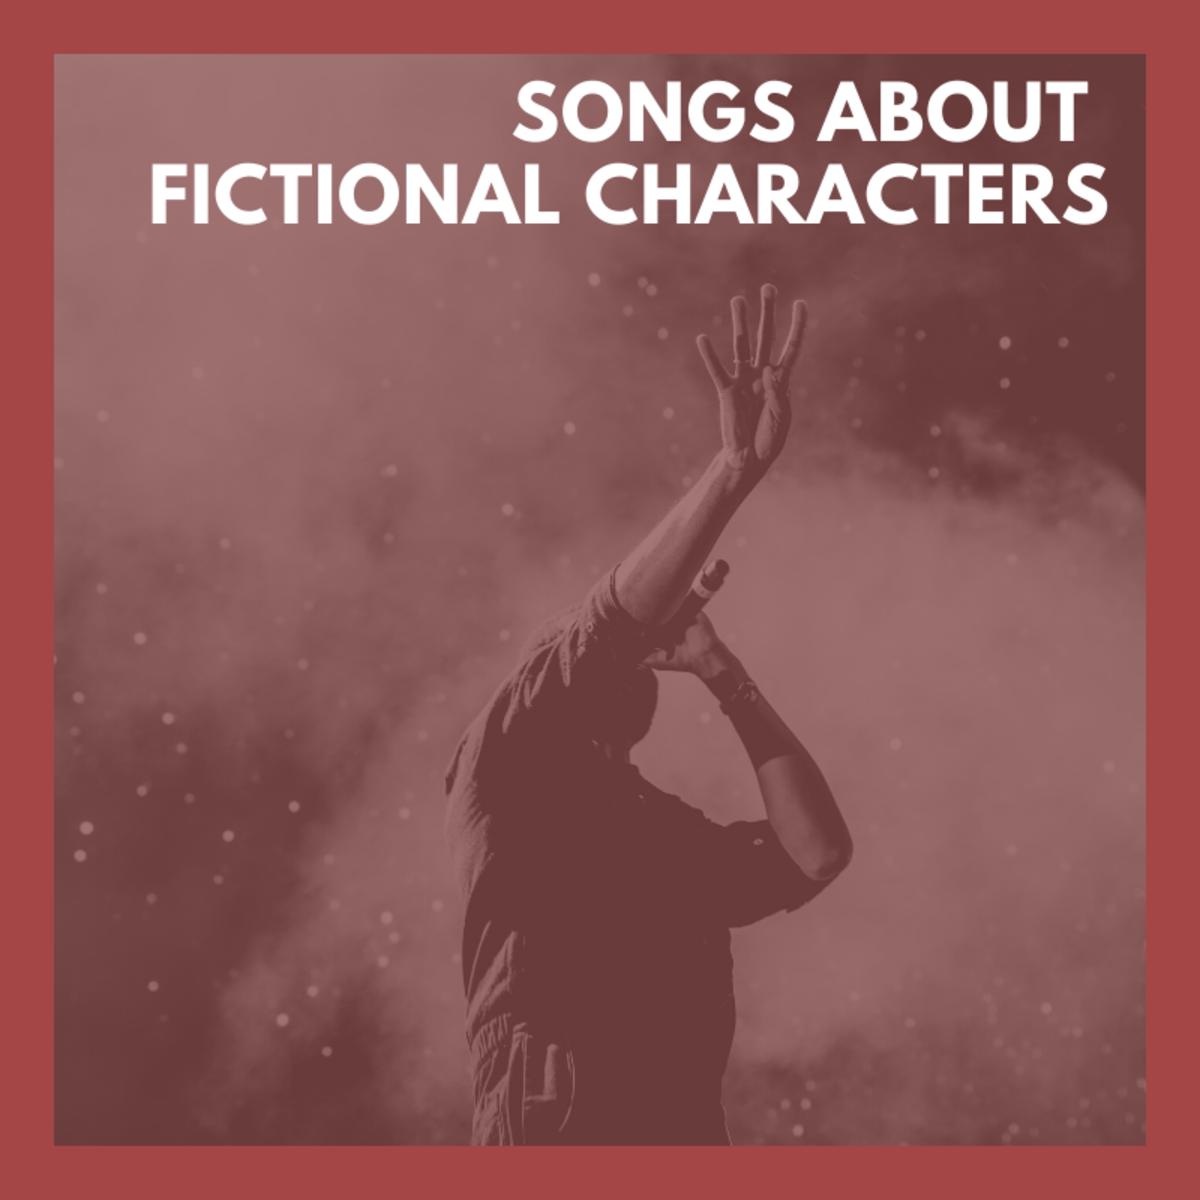 There are many great songs about fictional characters. Here are a few of my favorites!